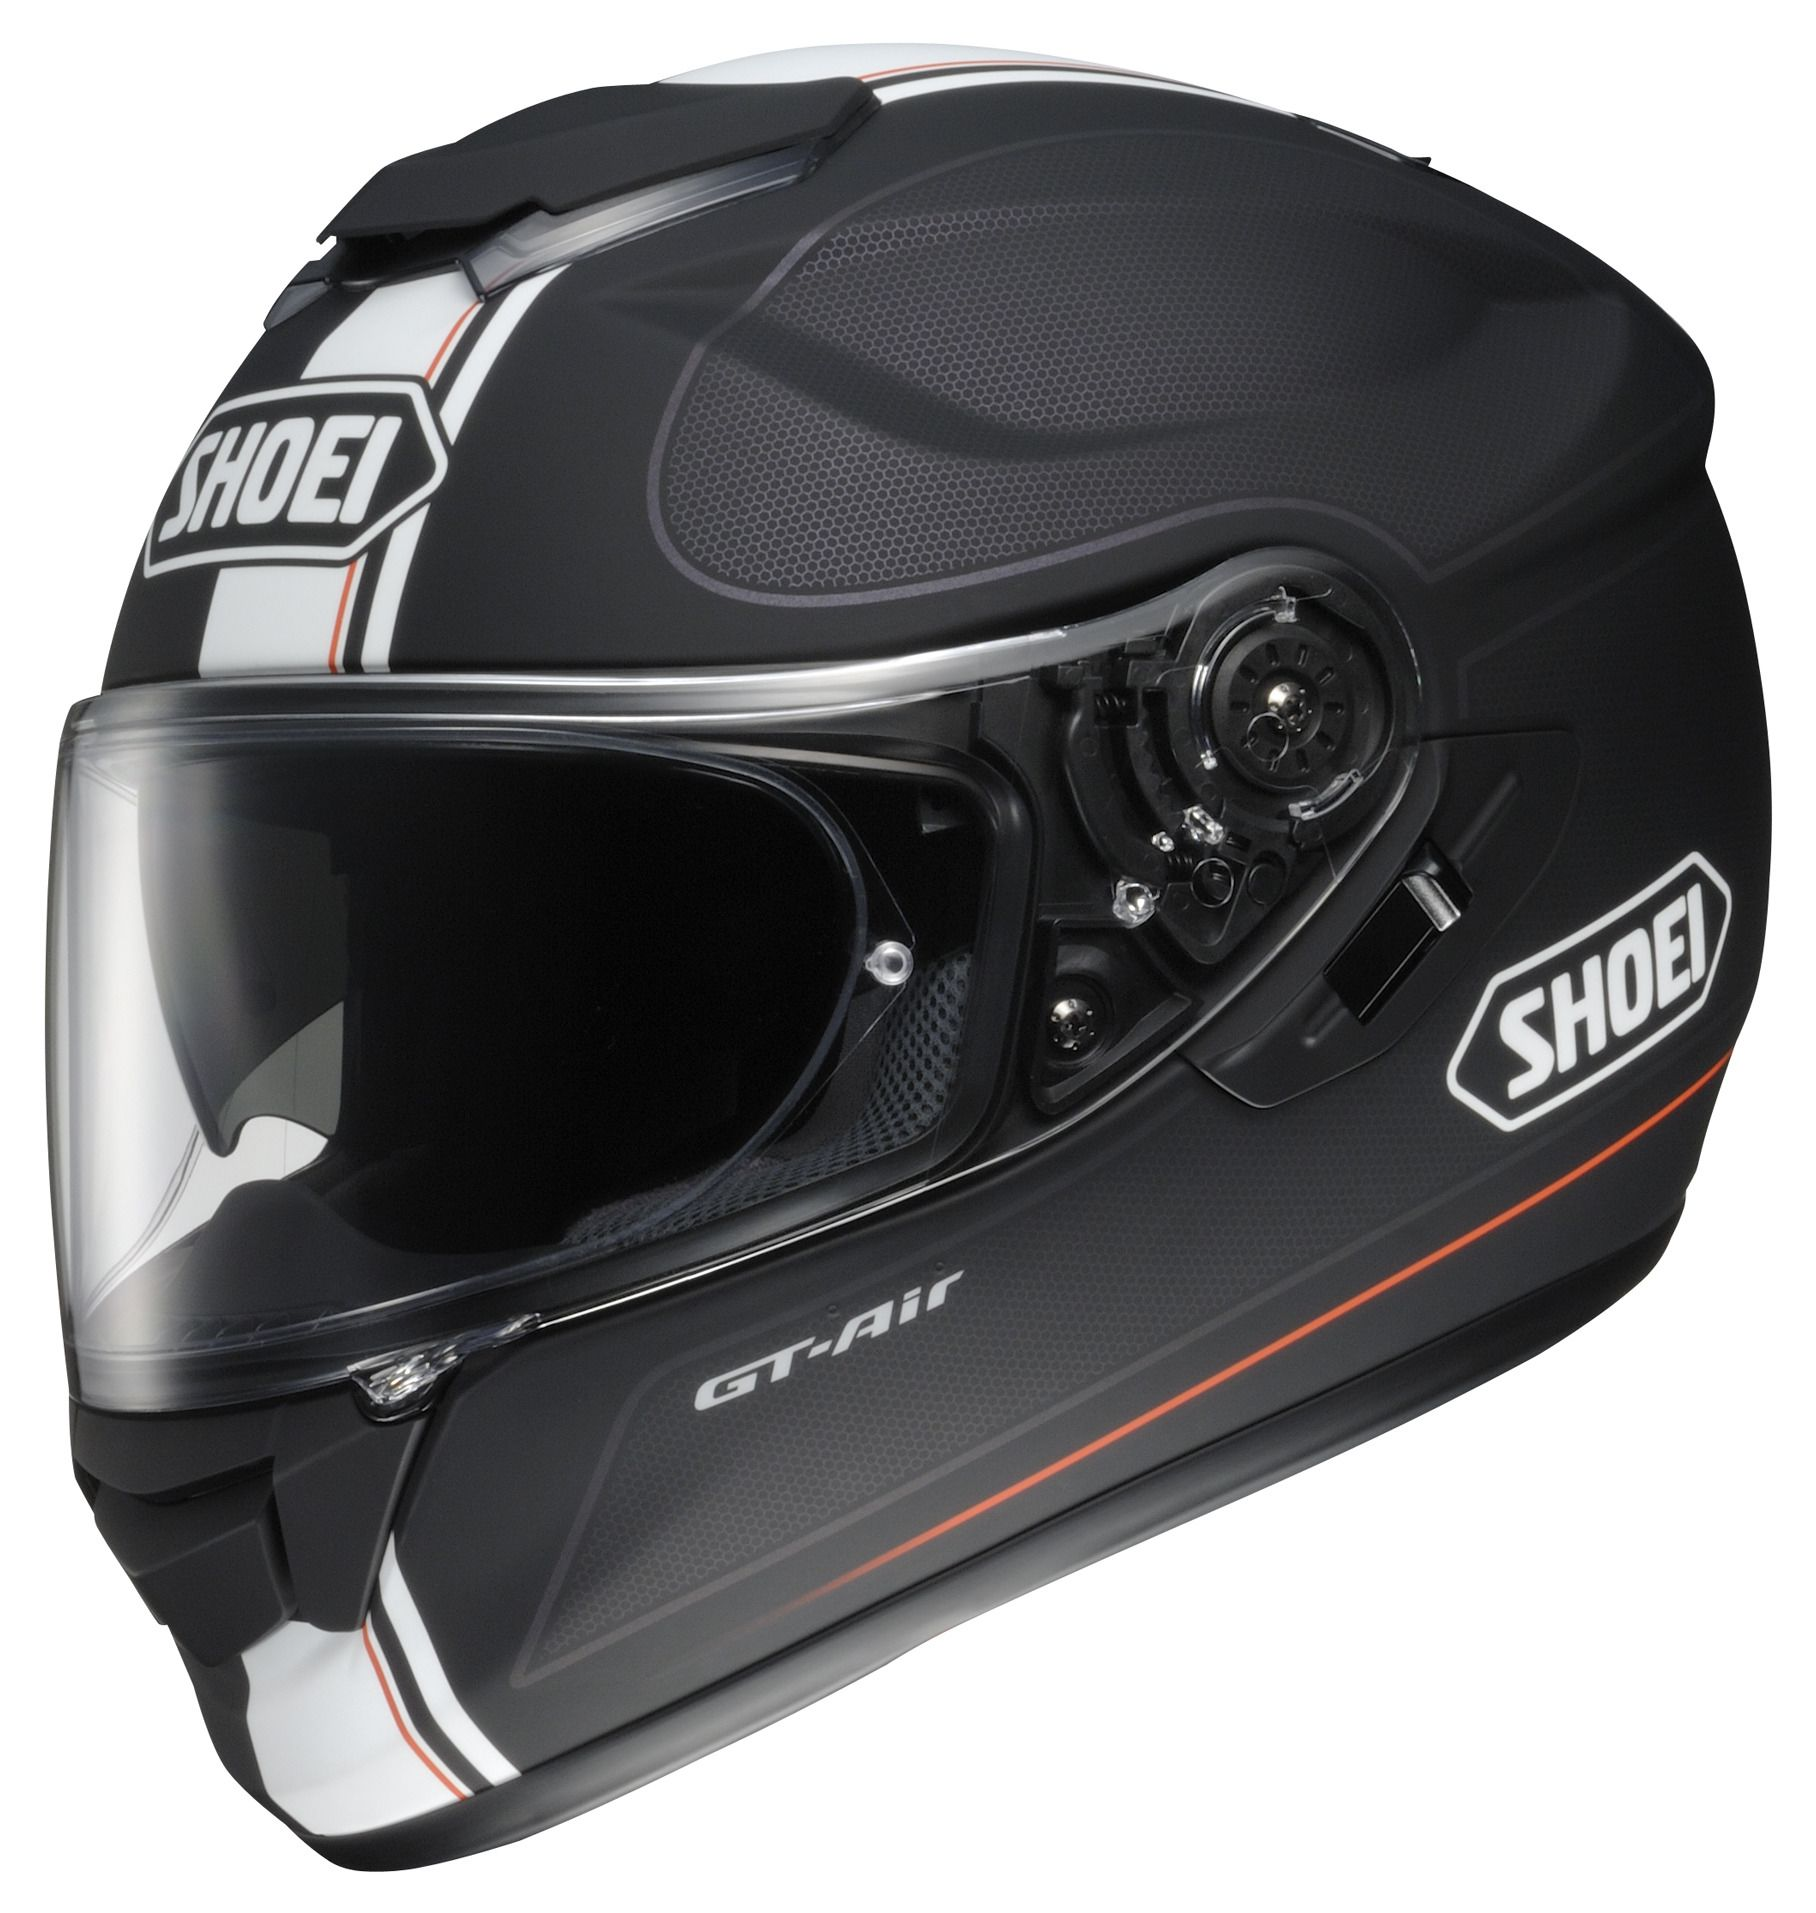 shoei gt air wanderer helmet revzilla. Black Bedroom Furniture Sets. Home Design Ideas